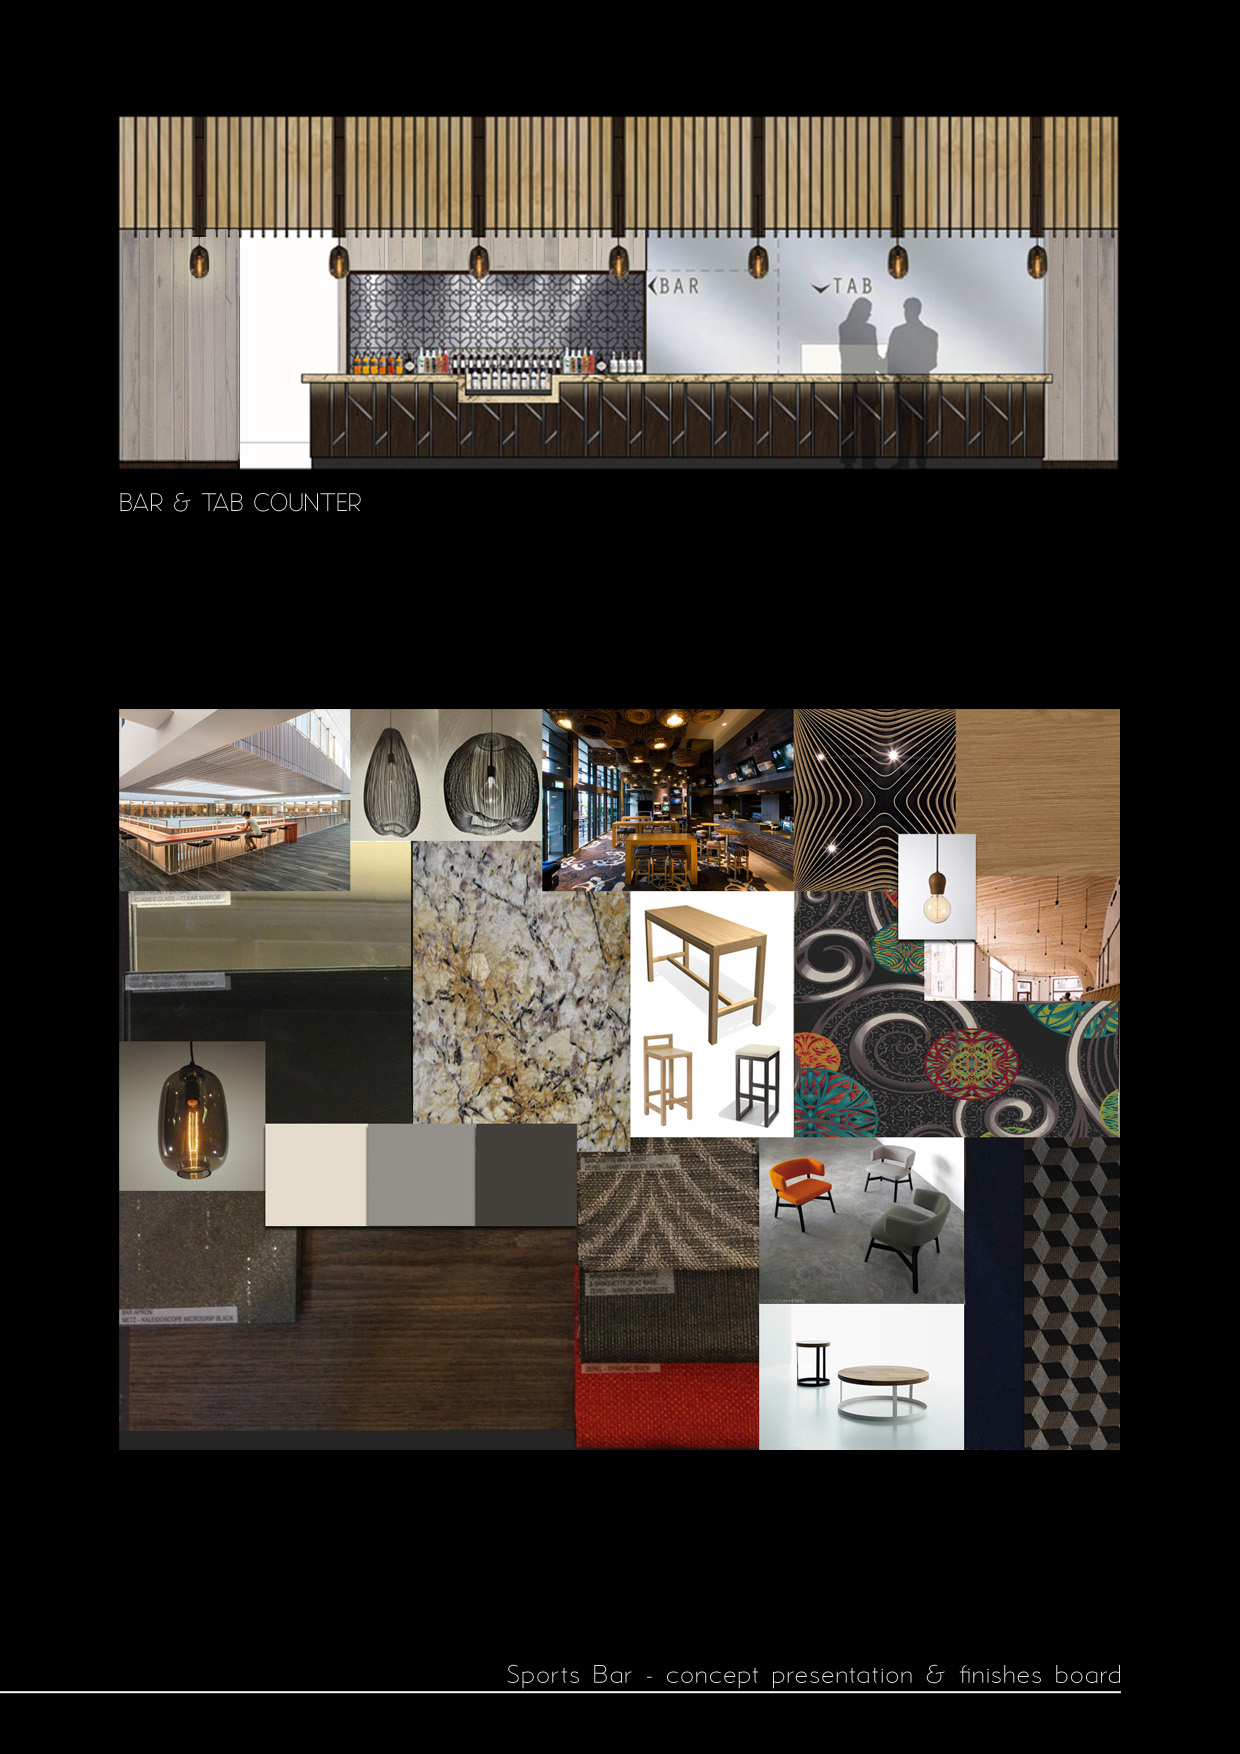 RSL bar pub design concept board